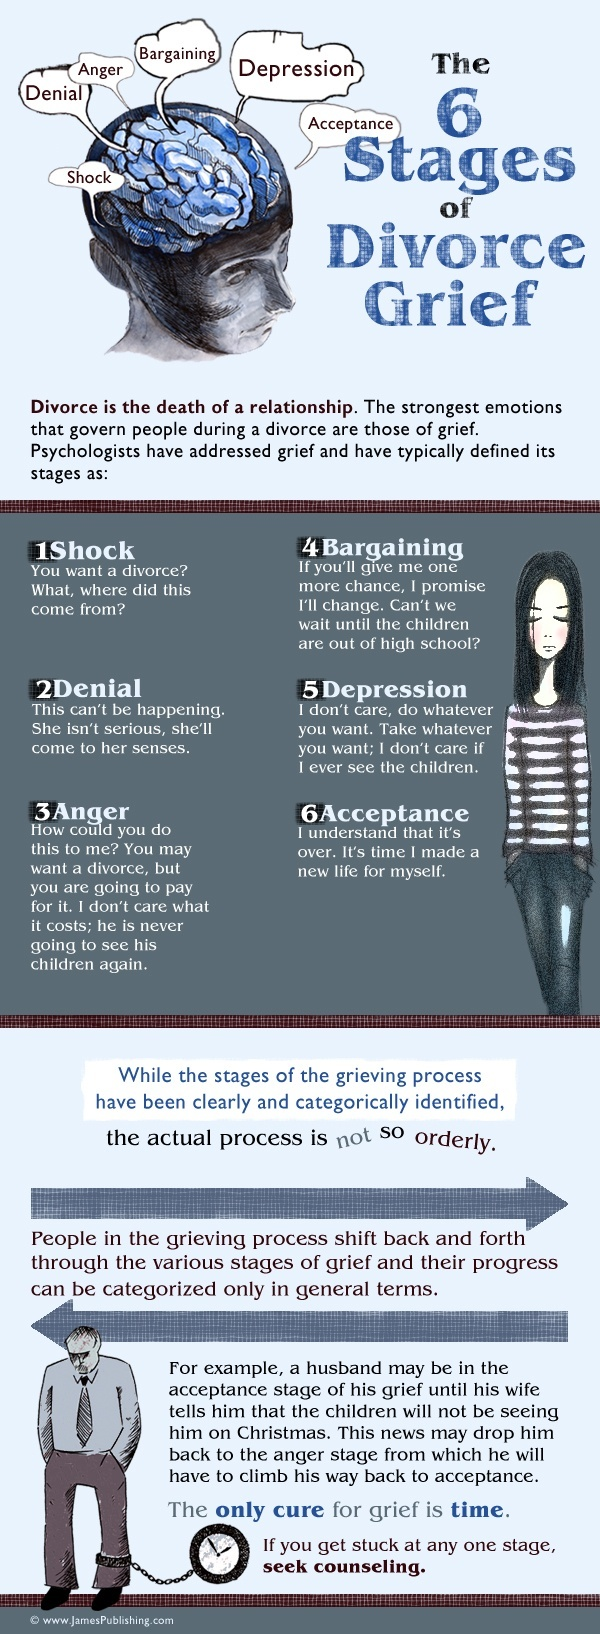 The 6 Stages Of Divorce Grief (Infographic)